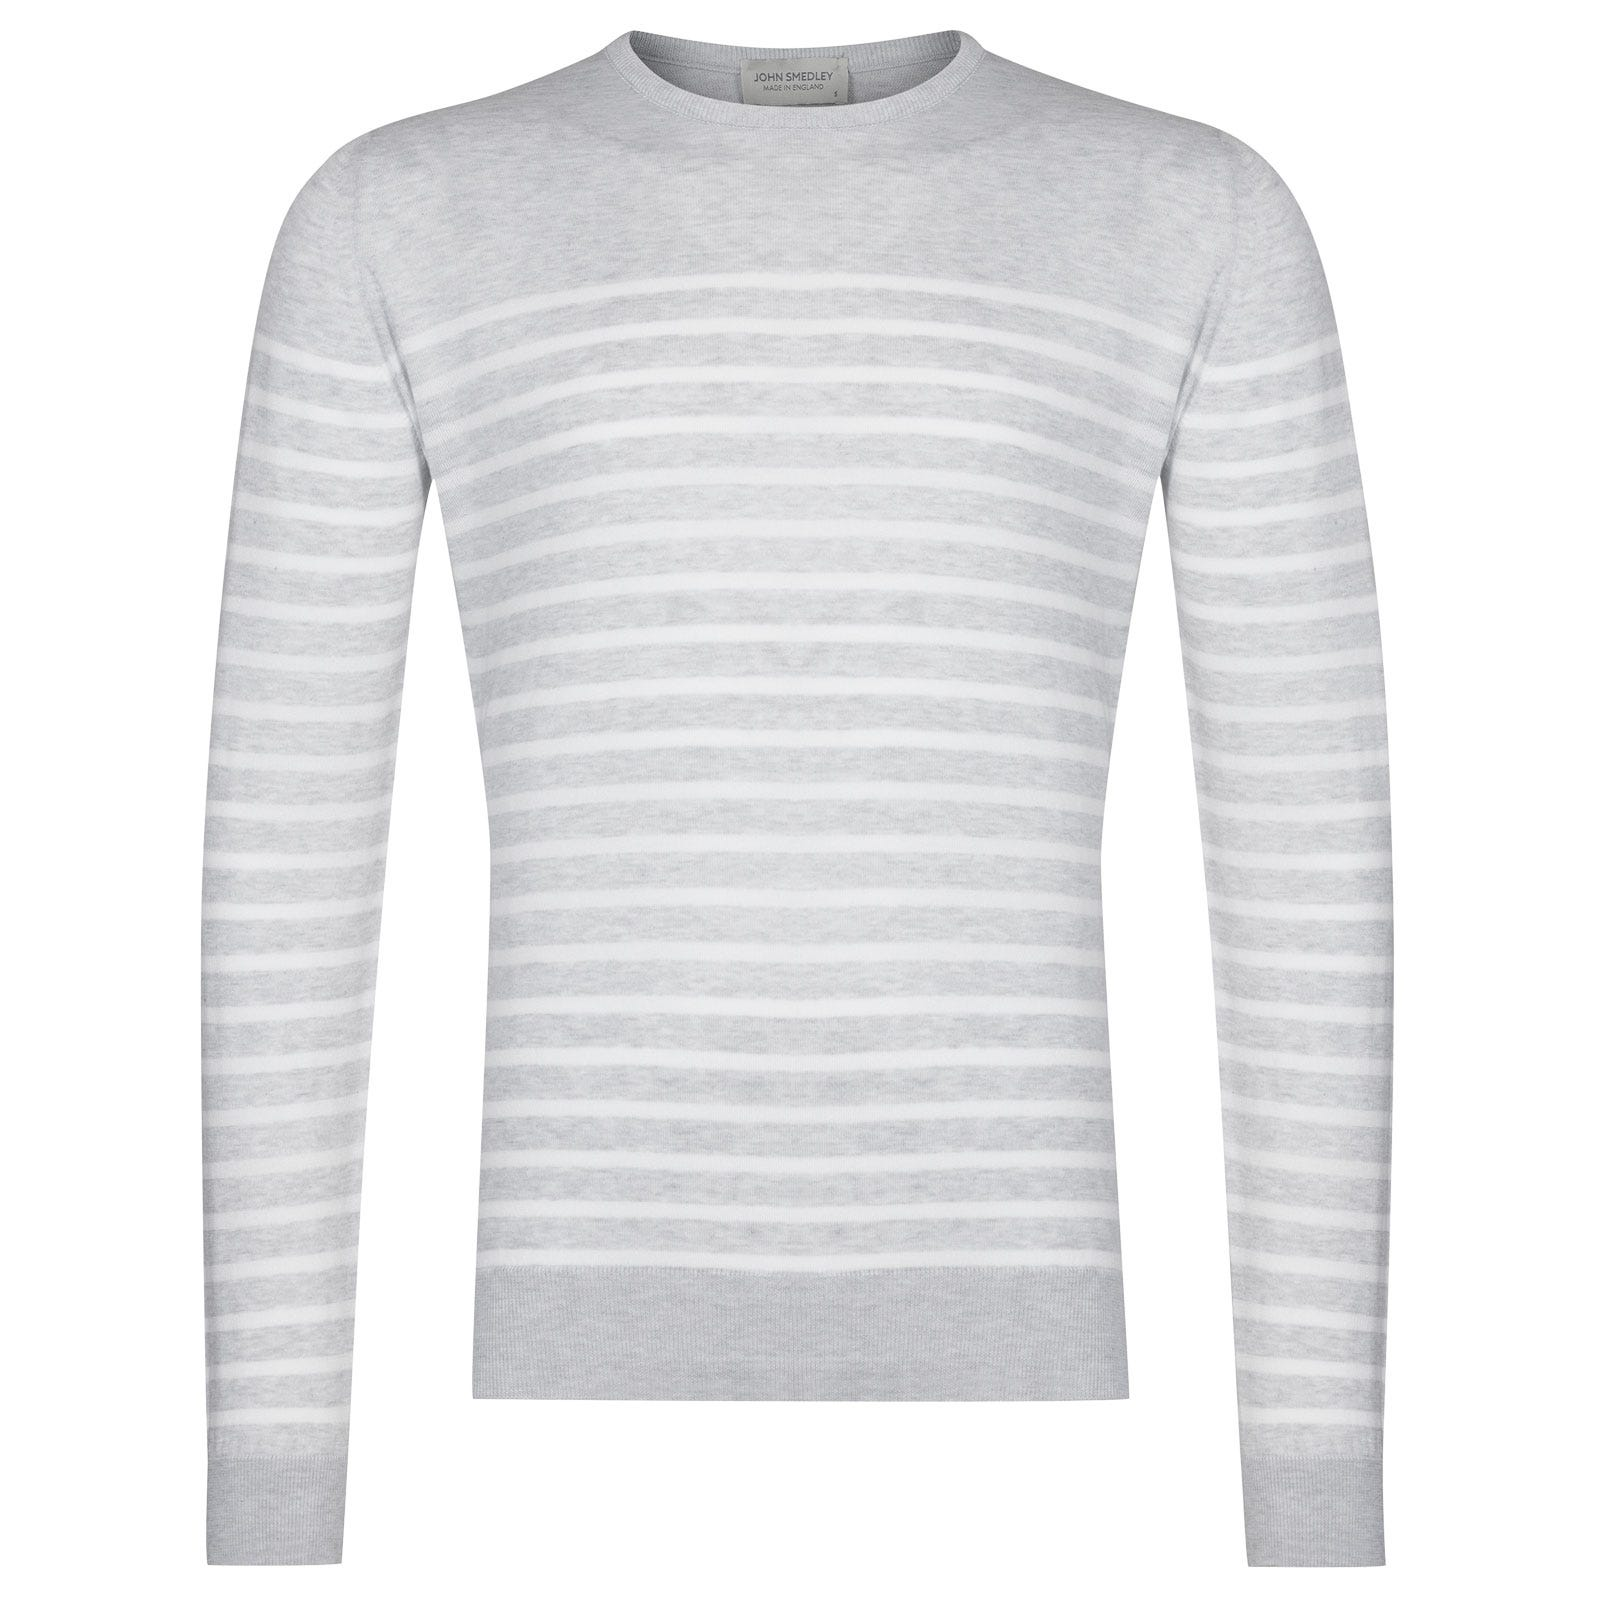 John Smedley Redfree Pullover in Feather Grey -M